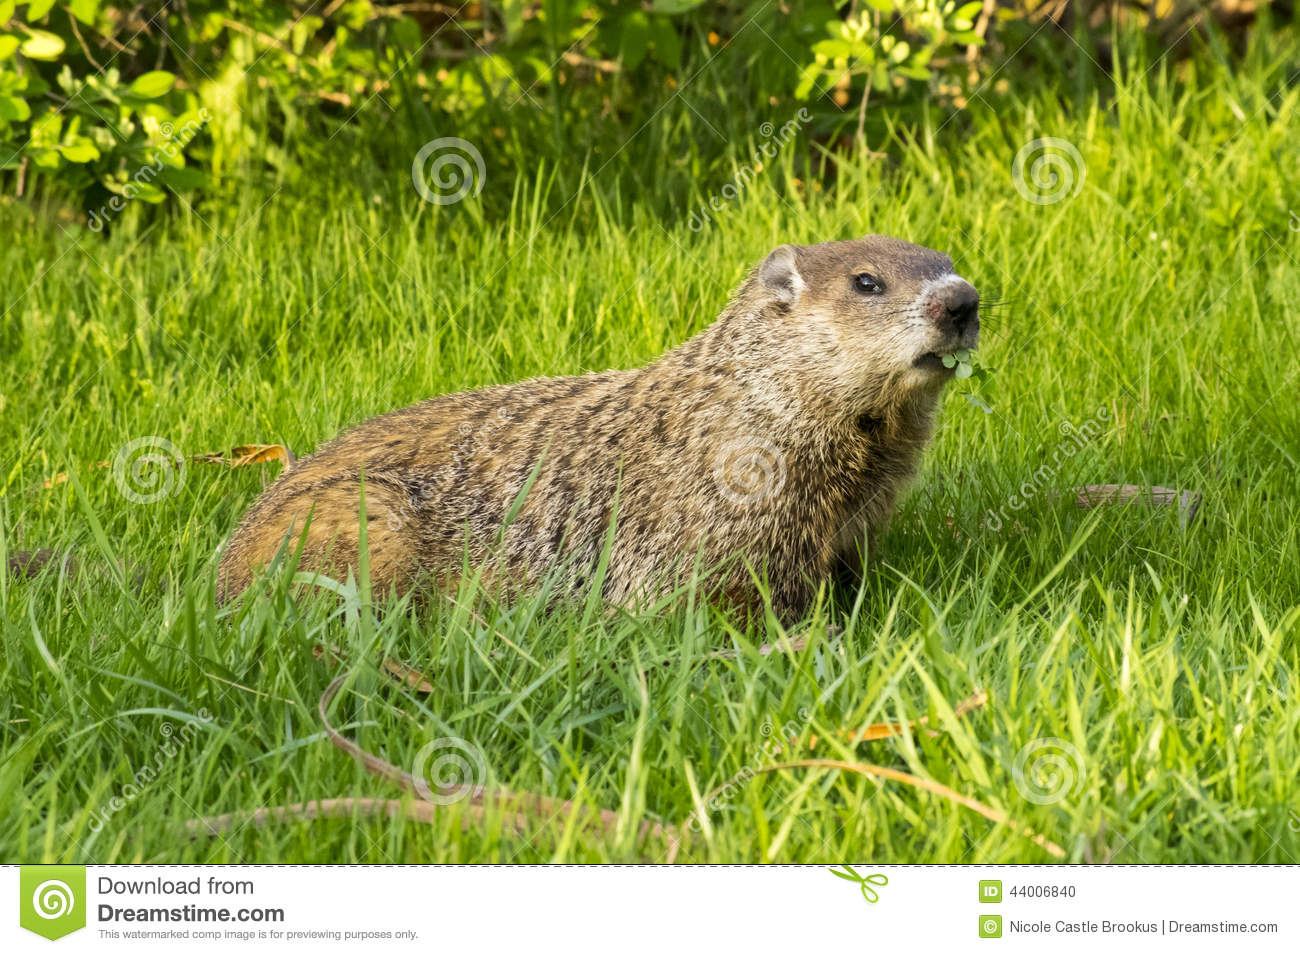 Groundhog and Clover